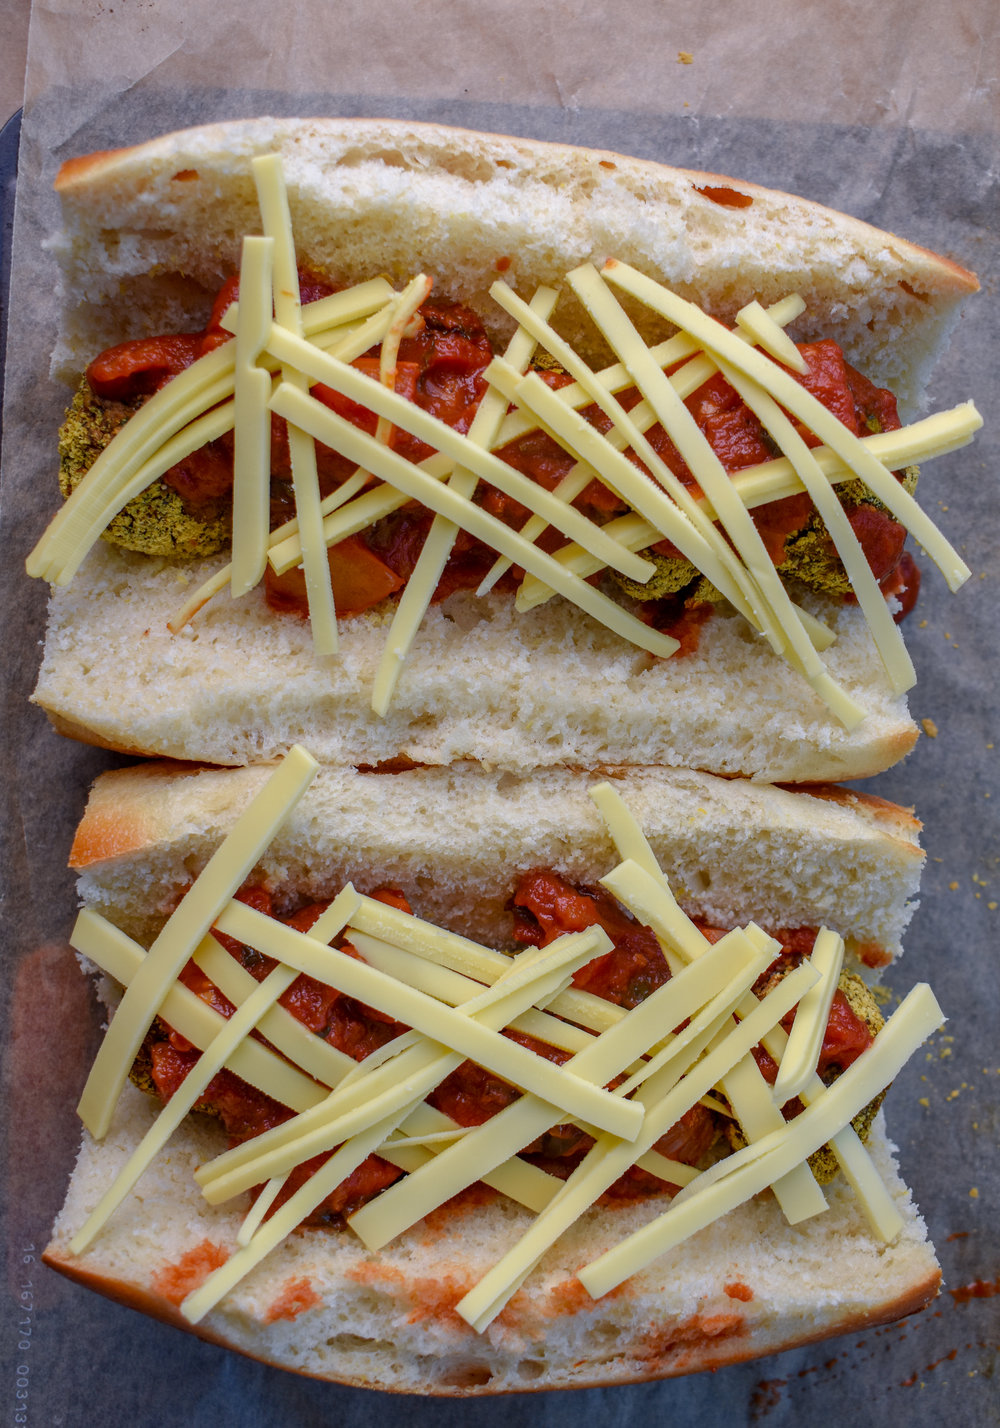 9. Slice your vegan provolone into thin strips and lattice across the top to form a nice cheesy layer. Put back into the oven on broil 525F on the parchment-lined baking pan. Broil for 5 minutes.